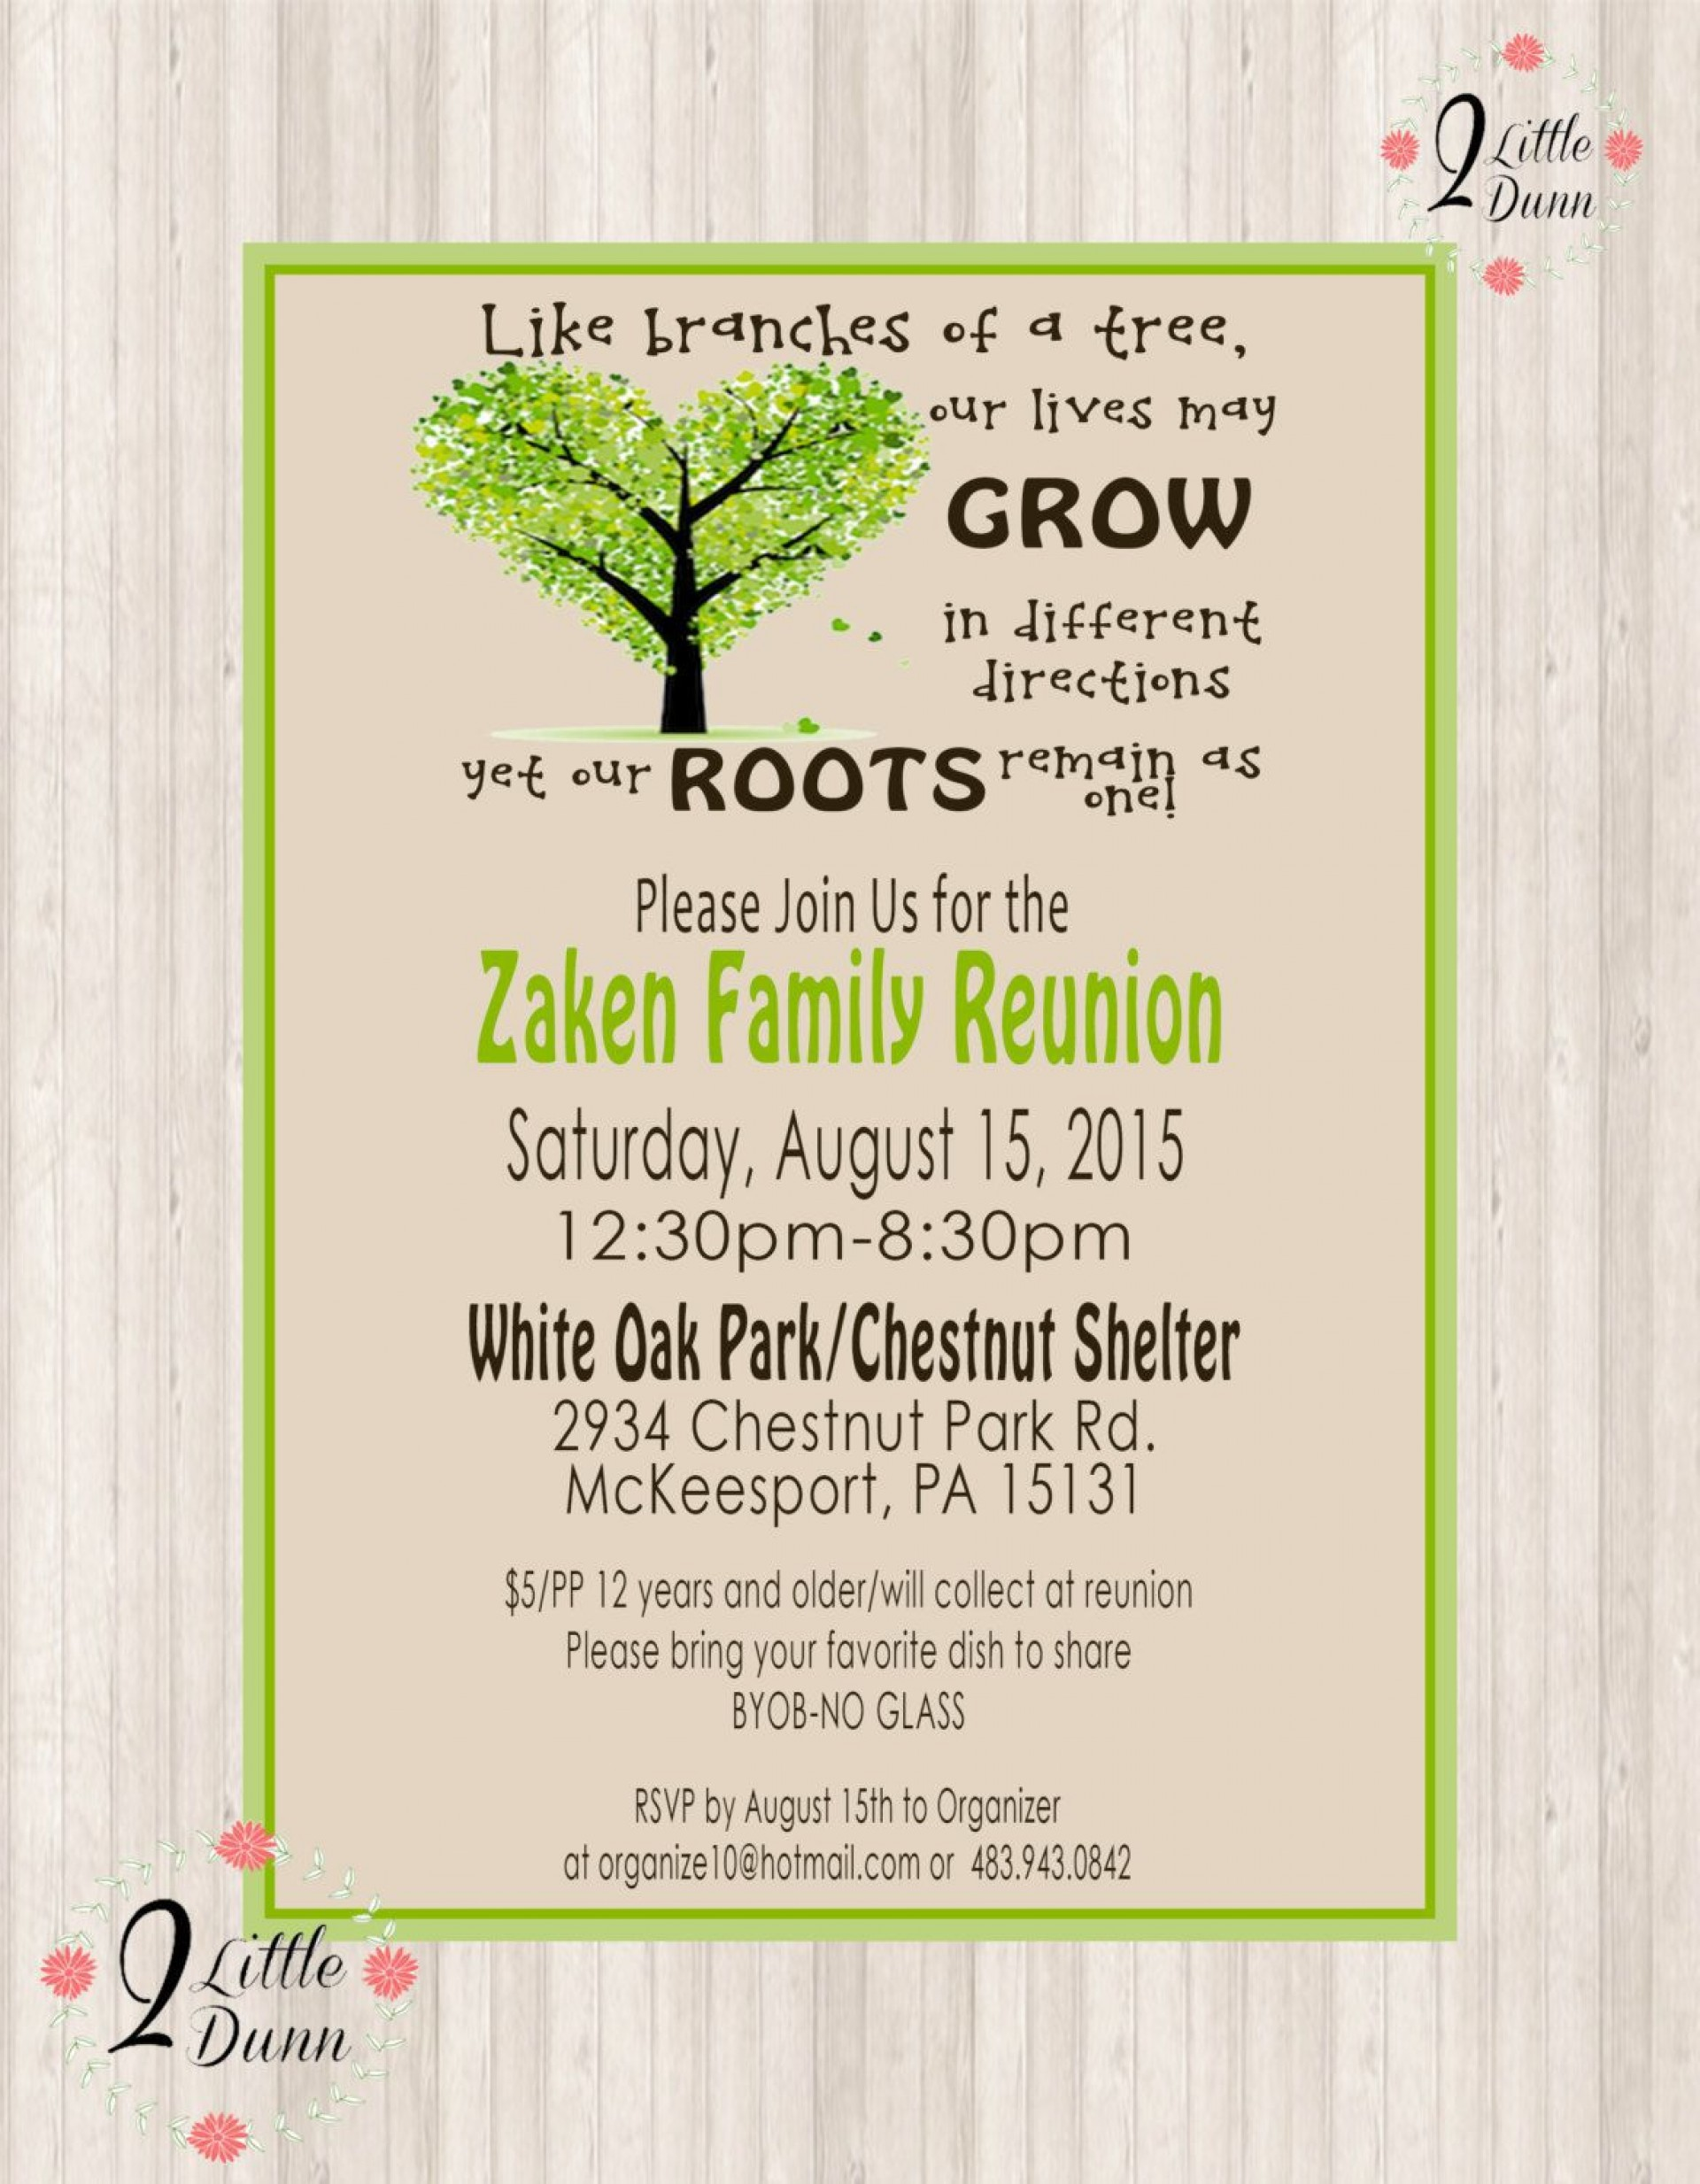 000 Unusual Family Reunion Invitation Template Free High Def  For Word Online1920